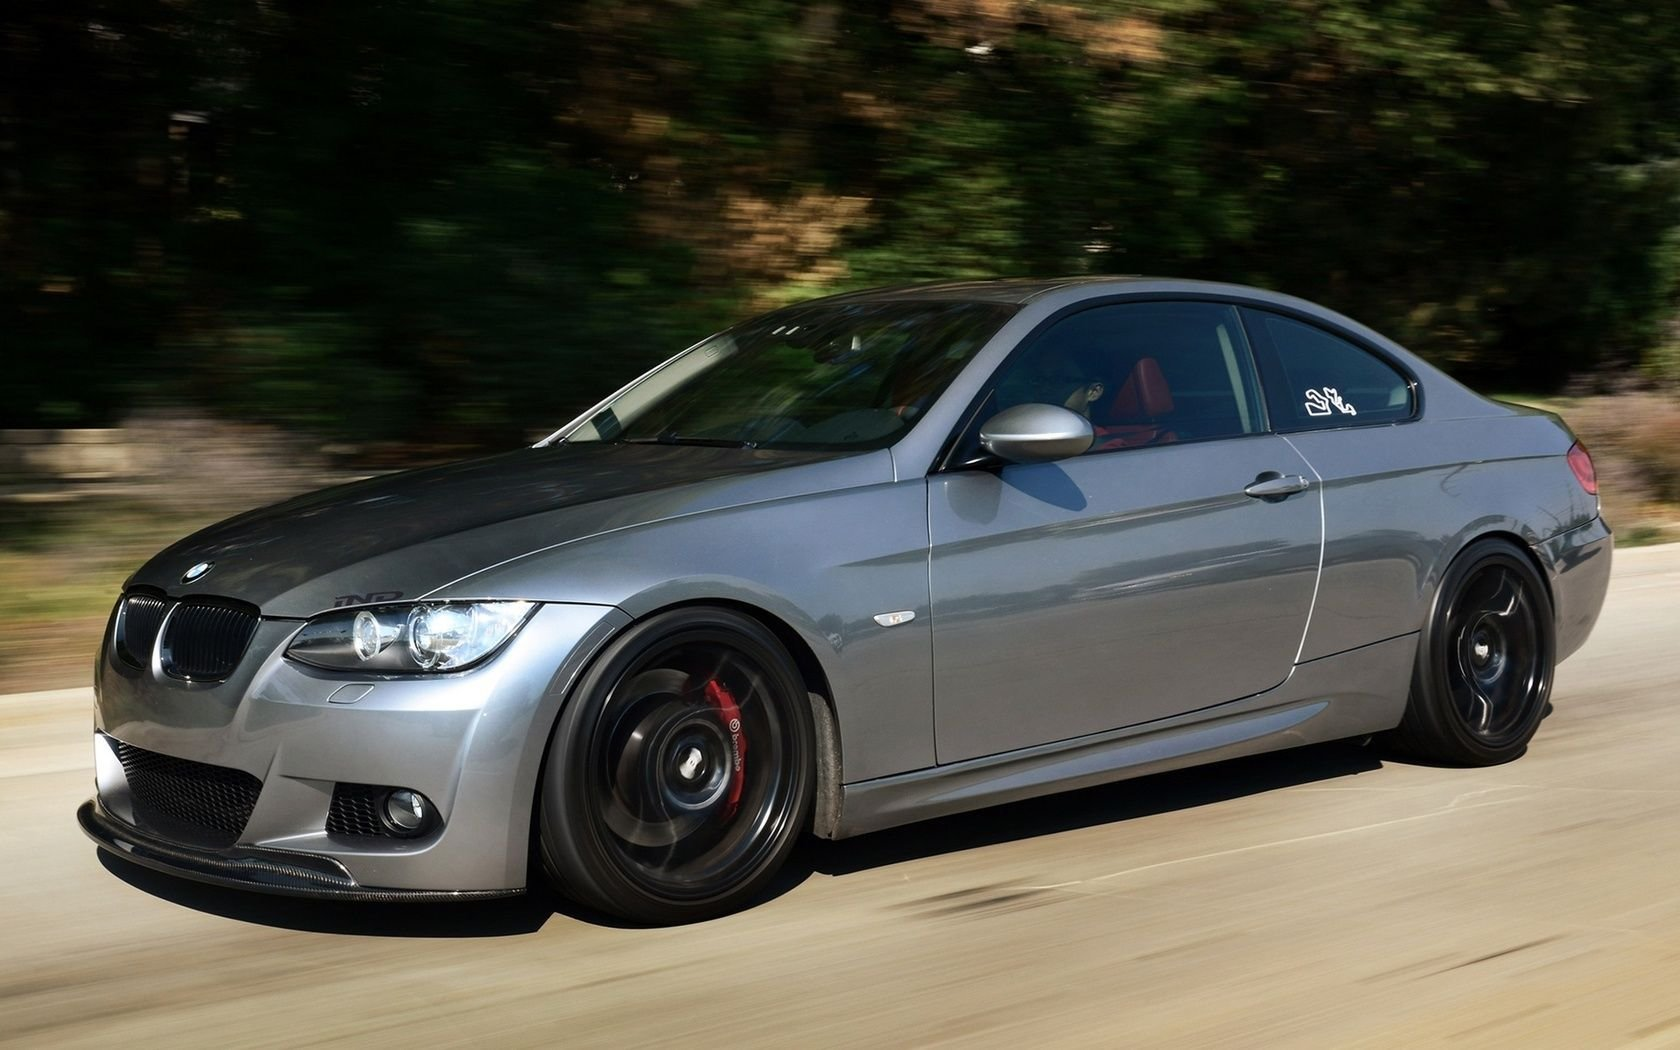 Latest Car Wallpaper Gray Bmw Compartment Rides Rate Sun Free Download